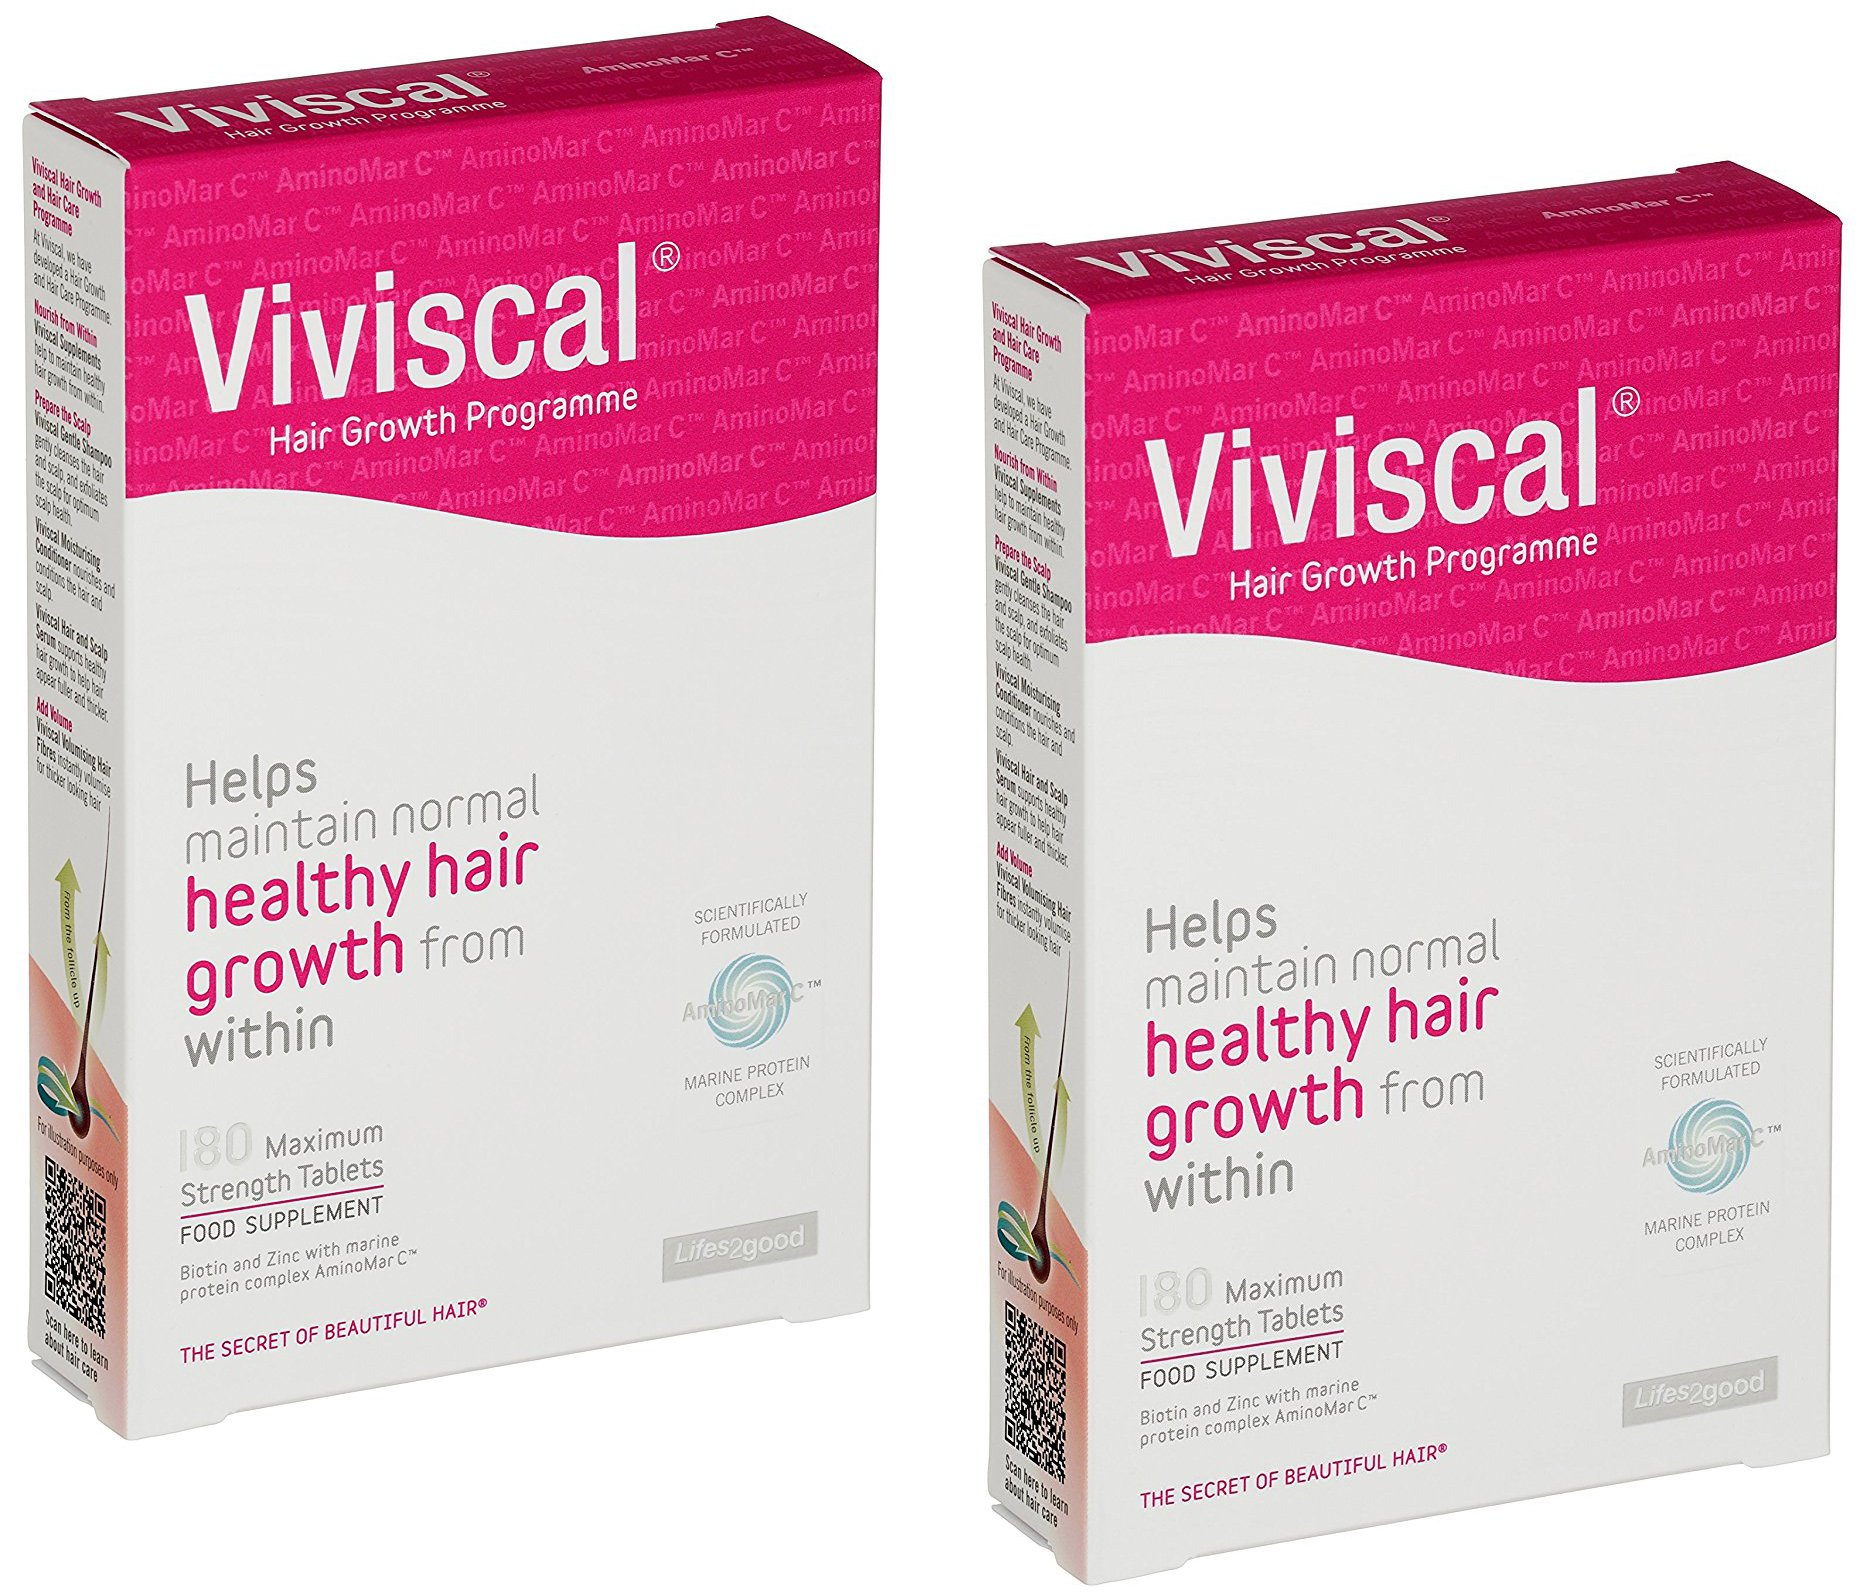 Viviscal Stimulating Extra Strength Hair Nutrient Tablets | 360 Easy Swallow Tablets ( x2 180 Count Boxes)| 6-Month Treatment Value Pack